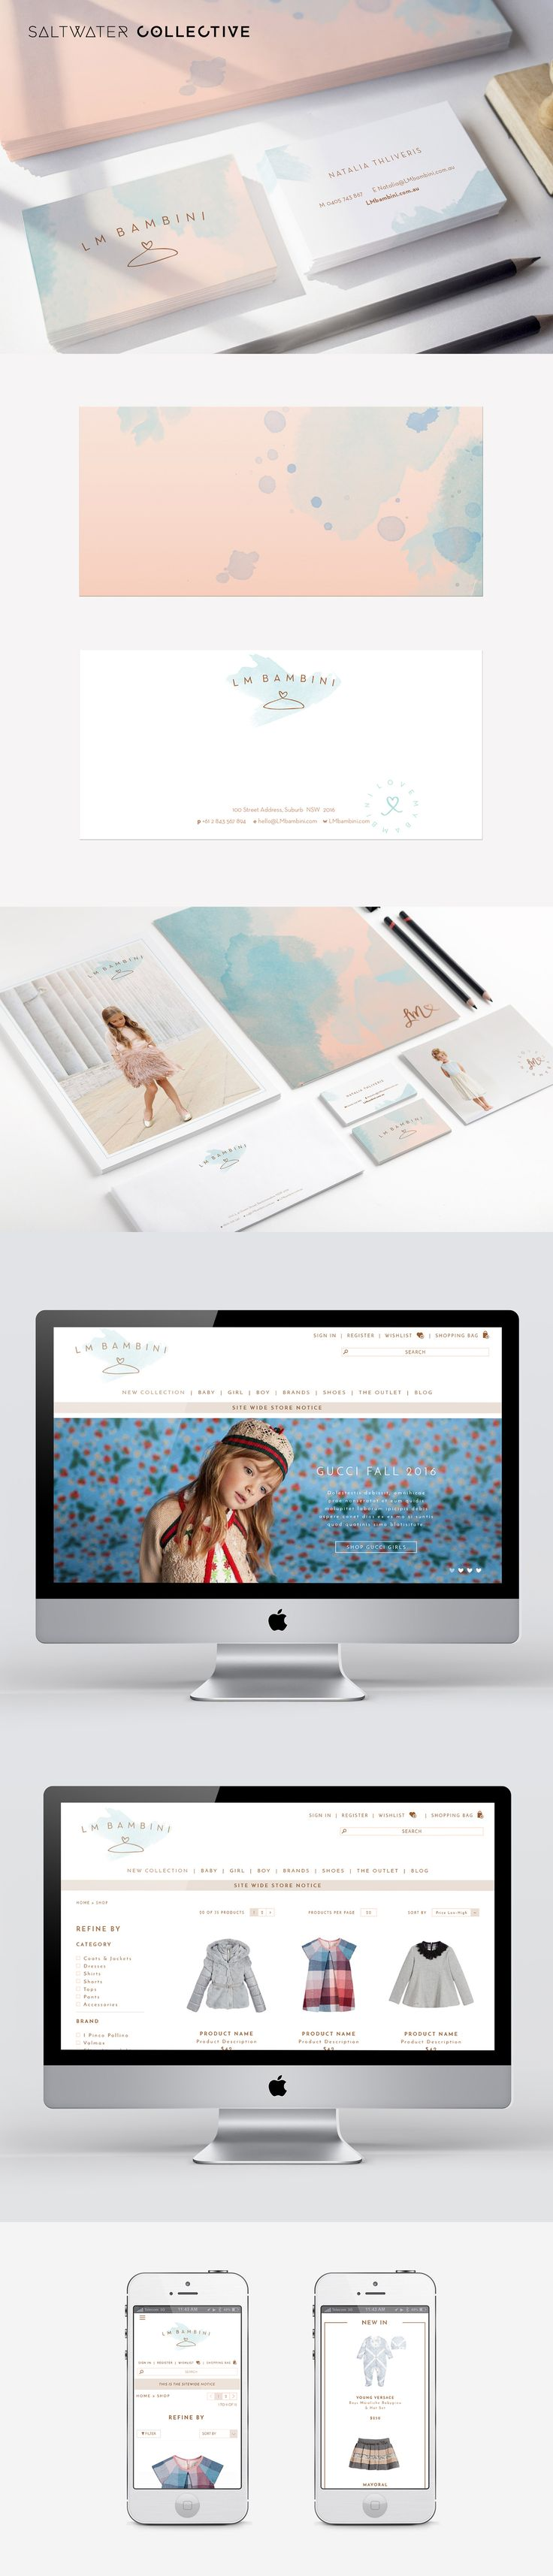 New brand and shopify website created for LM Bambini #DesignedBySWC